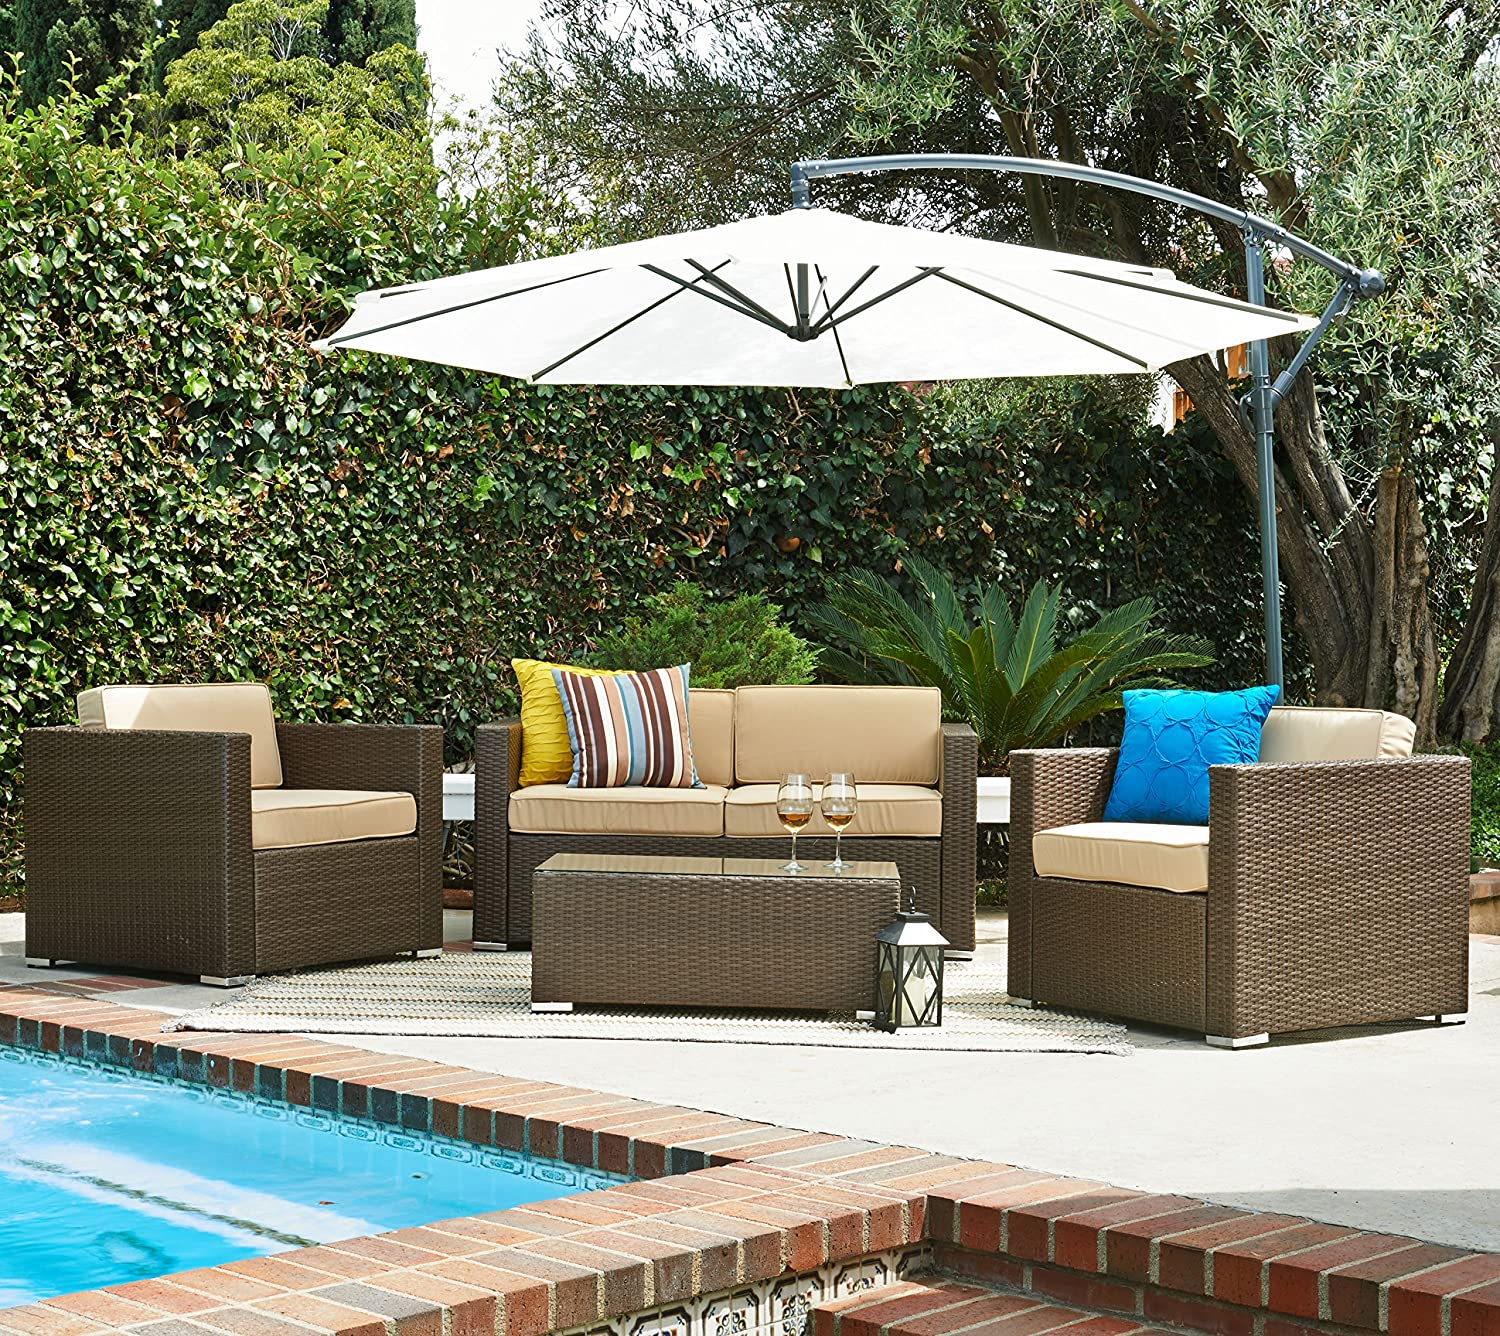 5 Pcs Patio Wicker Sofa Set with Cantilever Umbrella Dark Brown